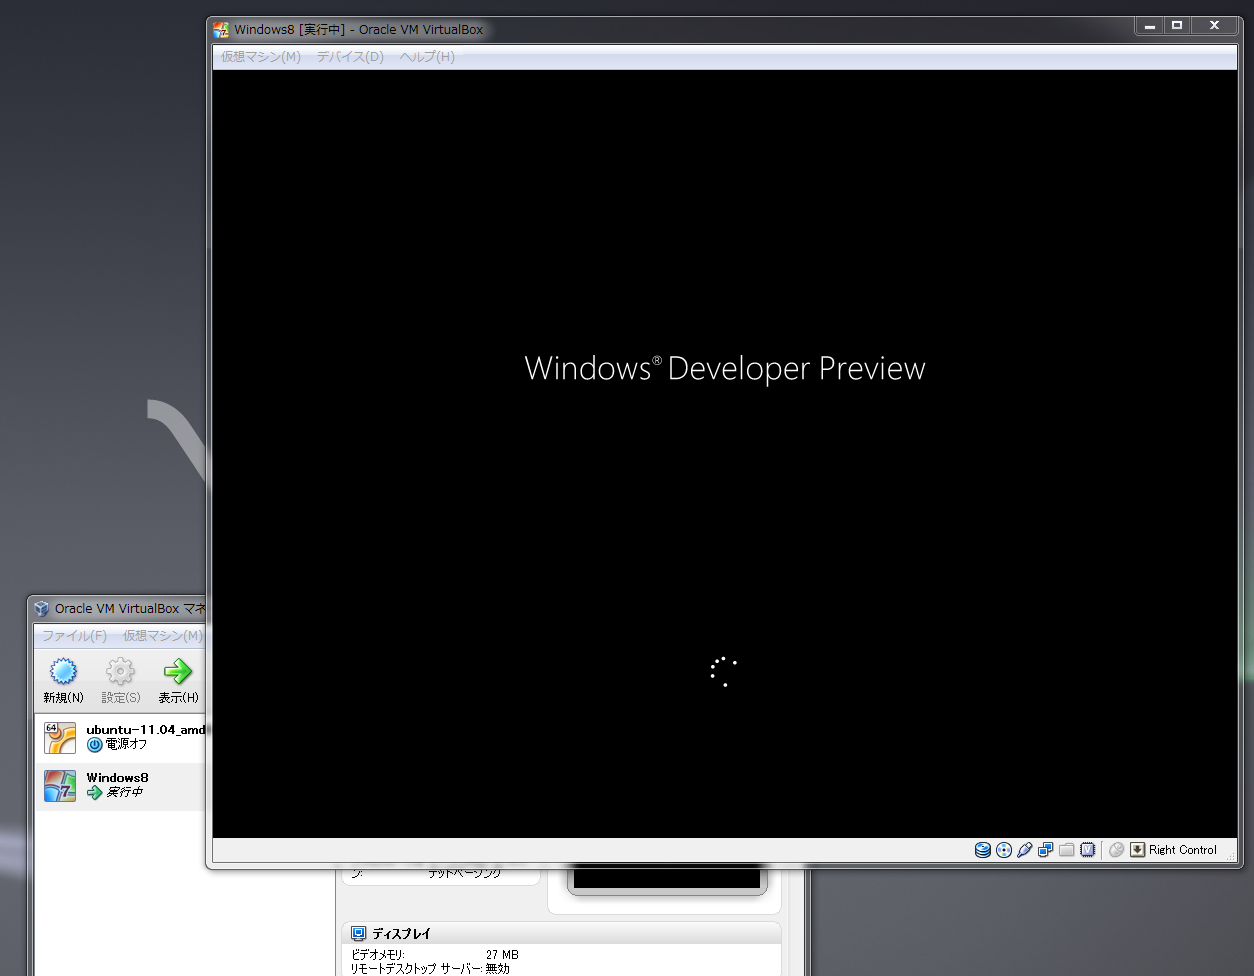 Windows Developer Preview(Microsoft Windows 8)をVirtualBoxへインストールしてみた